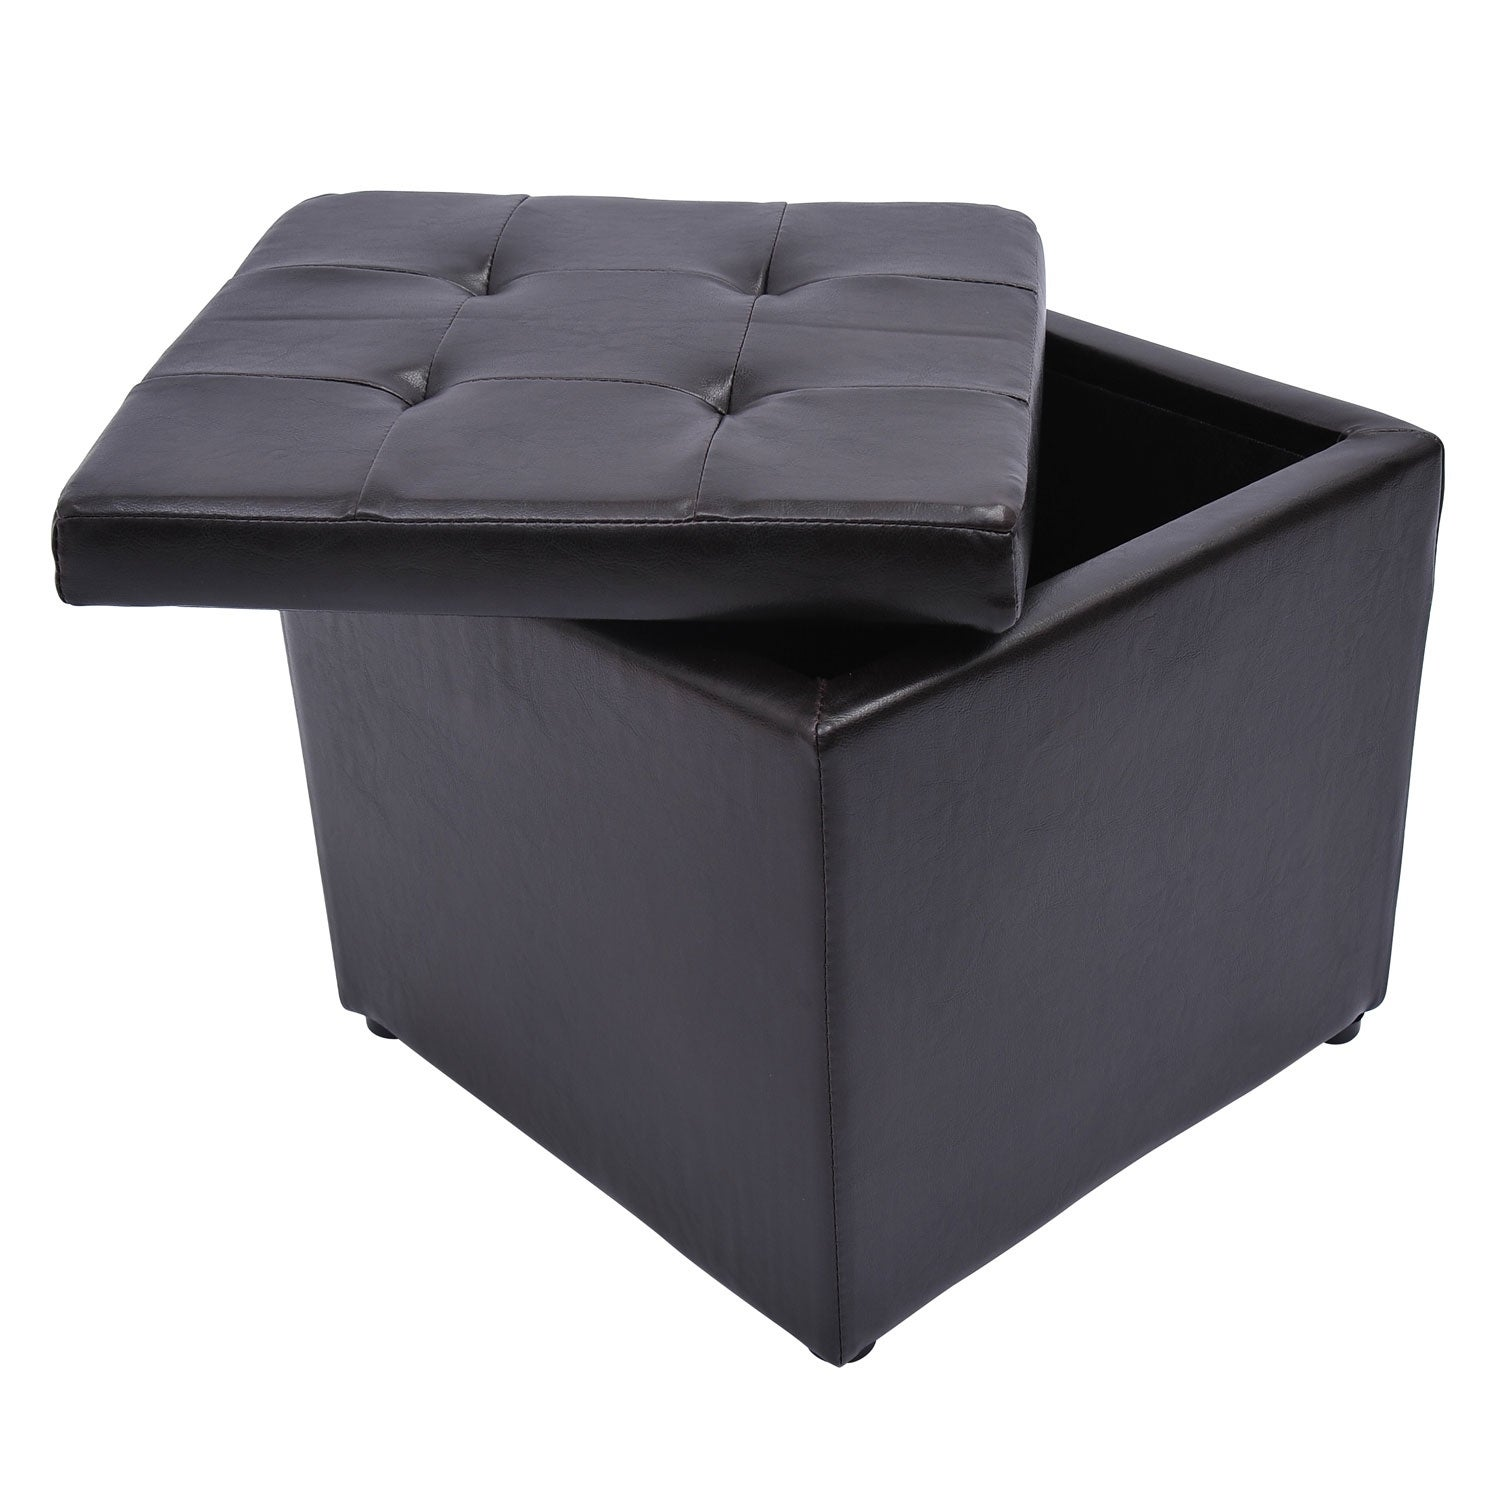 Marvelous Homcom Square Faux Leather Storage Ottoman Cjindustries Chair Design For Home Cjindustriesco